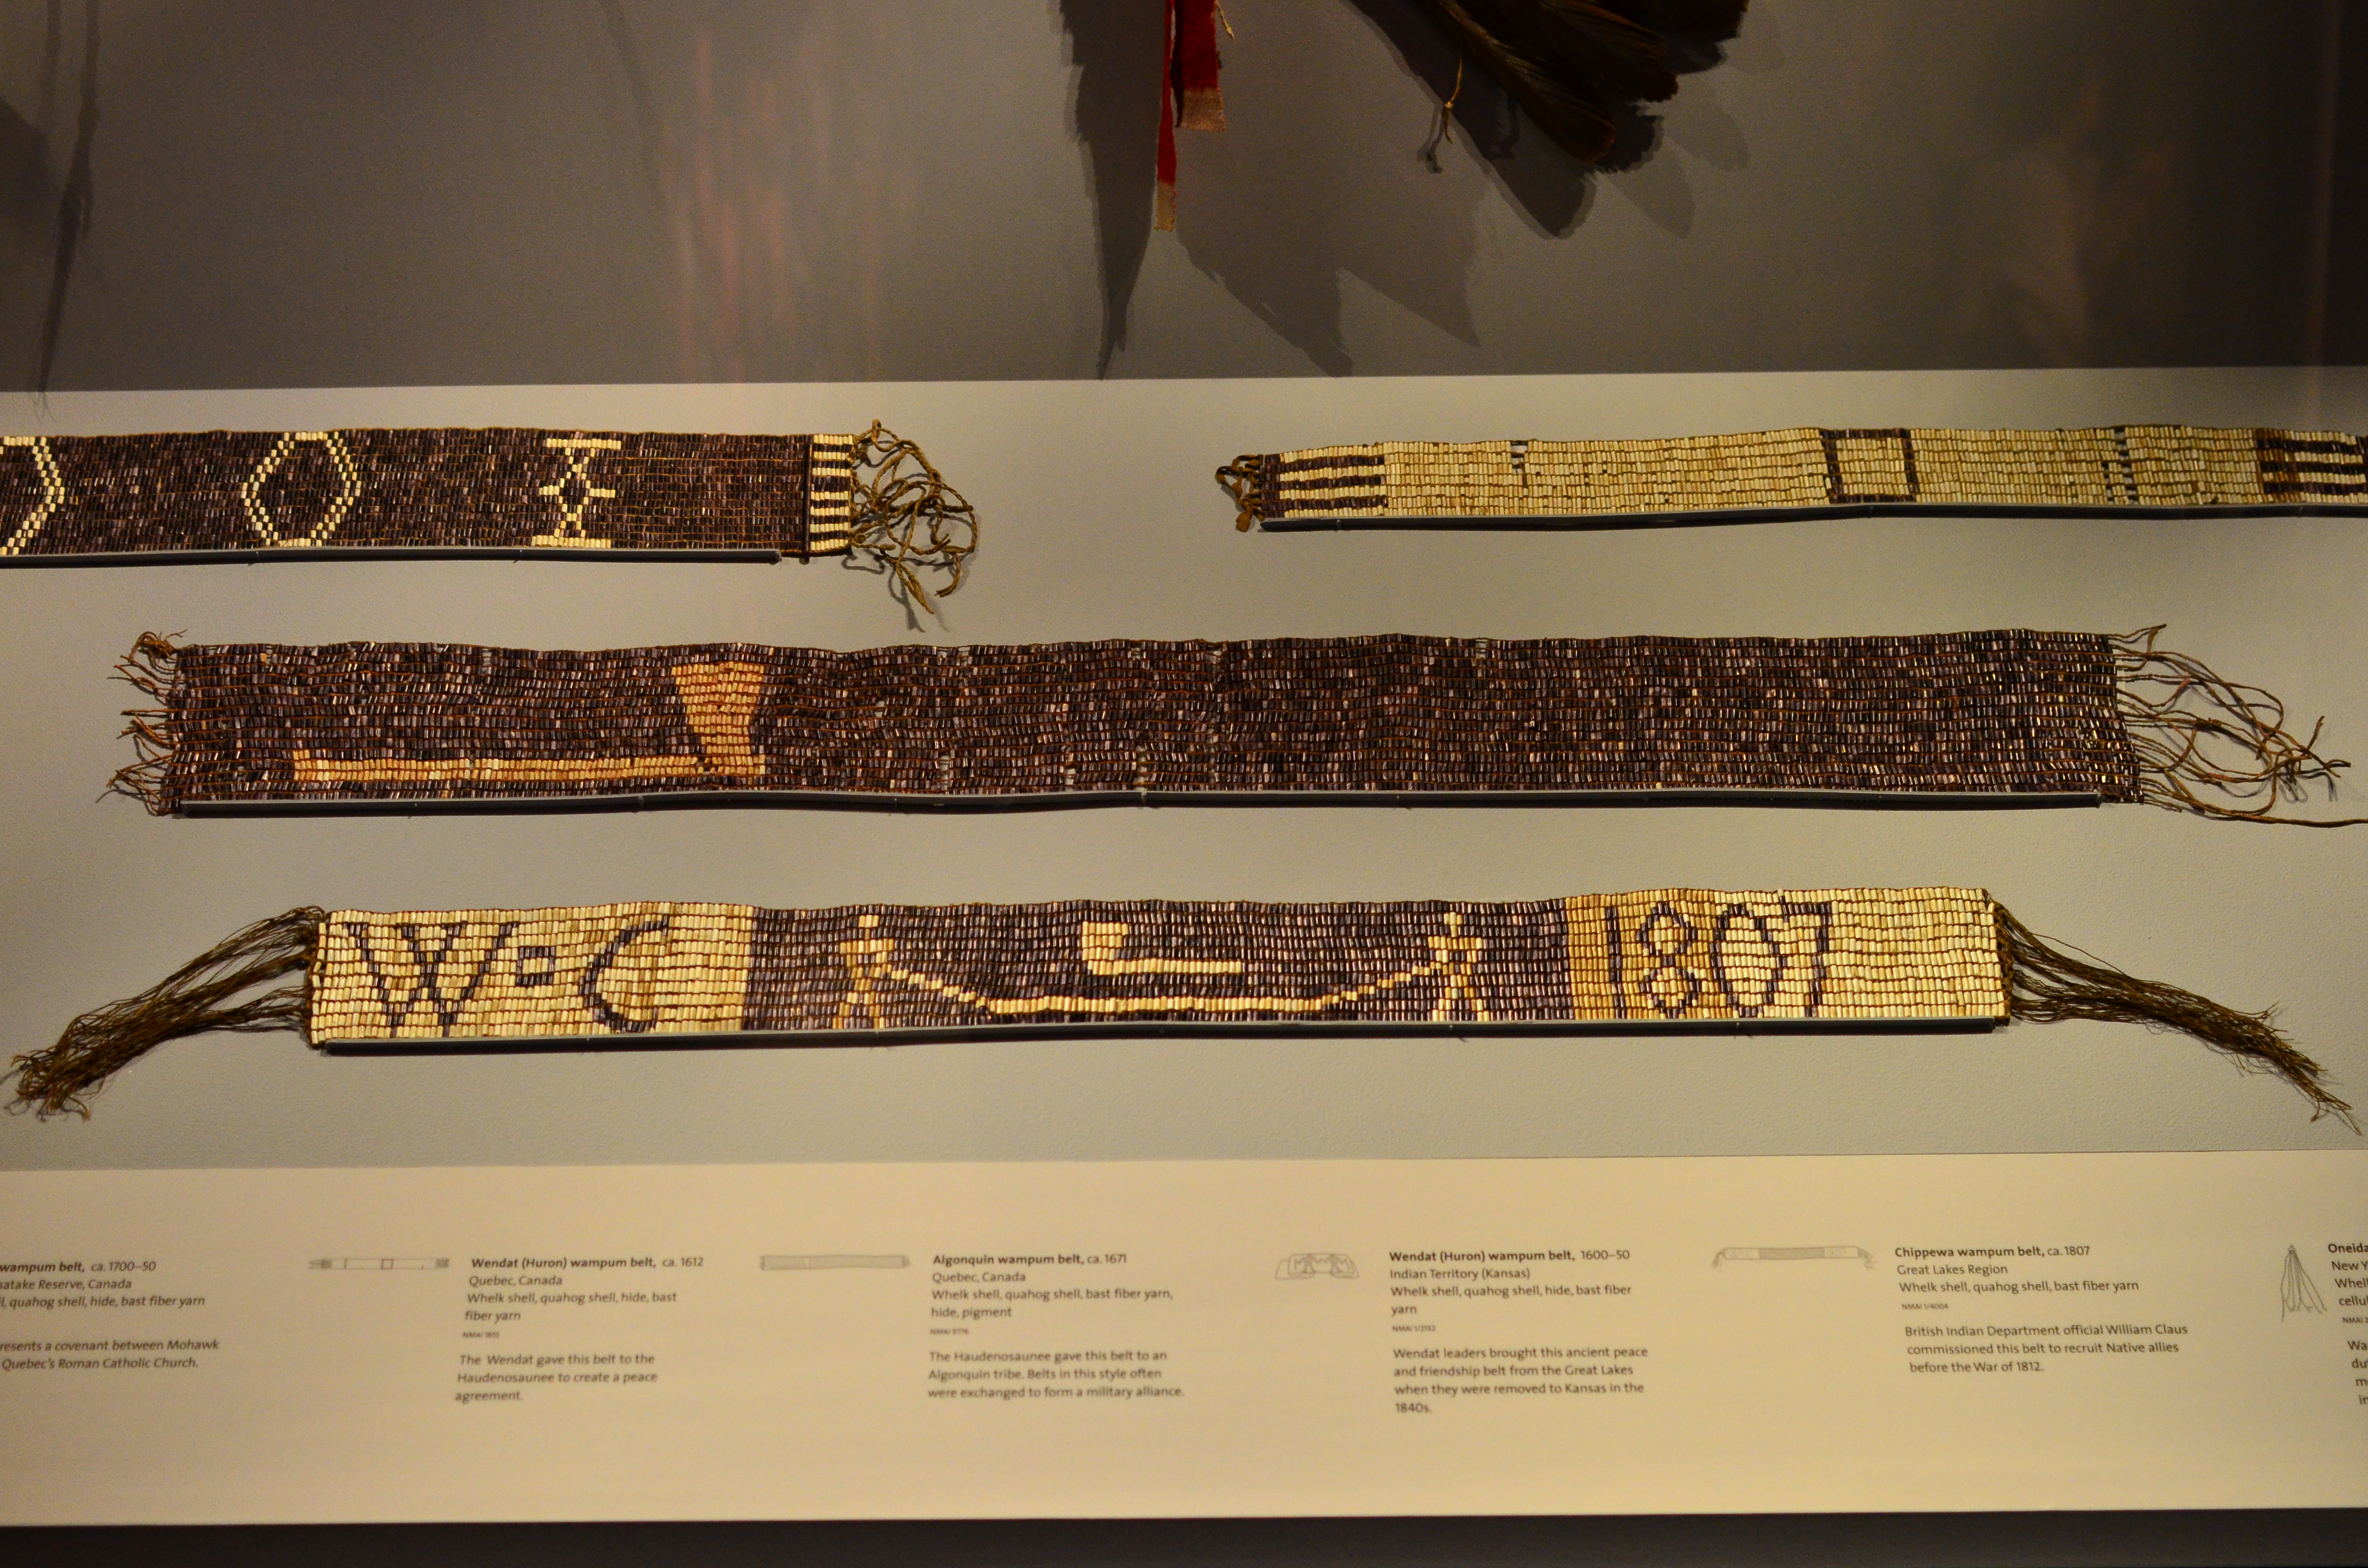 Chippewa Wampum Belt Used By the British to Recruit Native Allies Before 1812